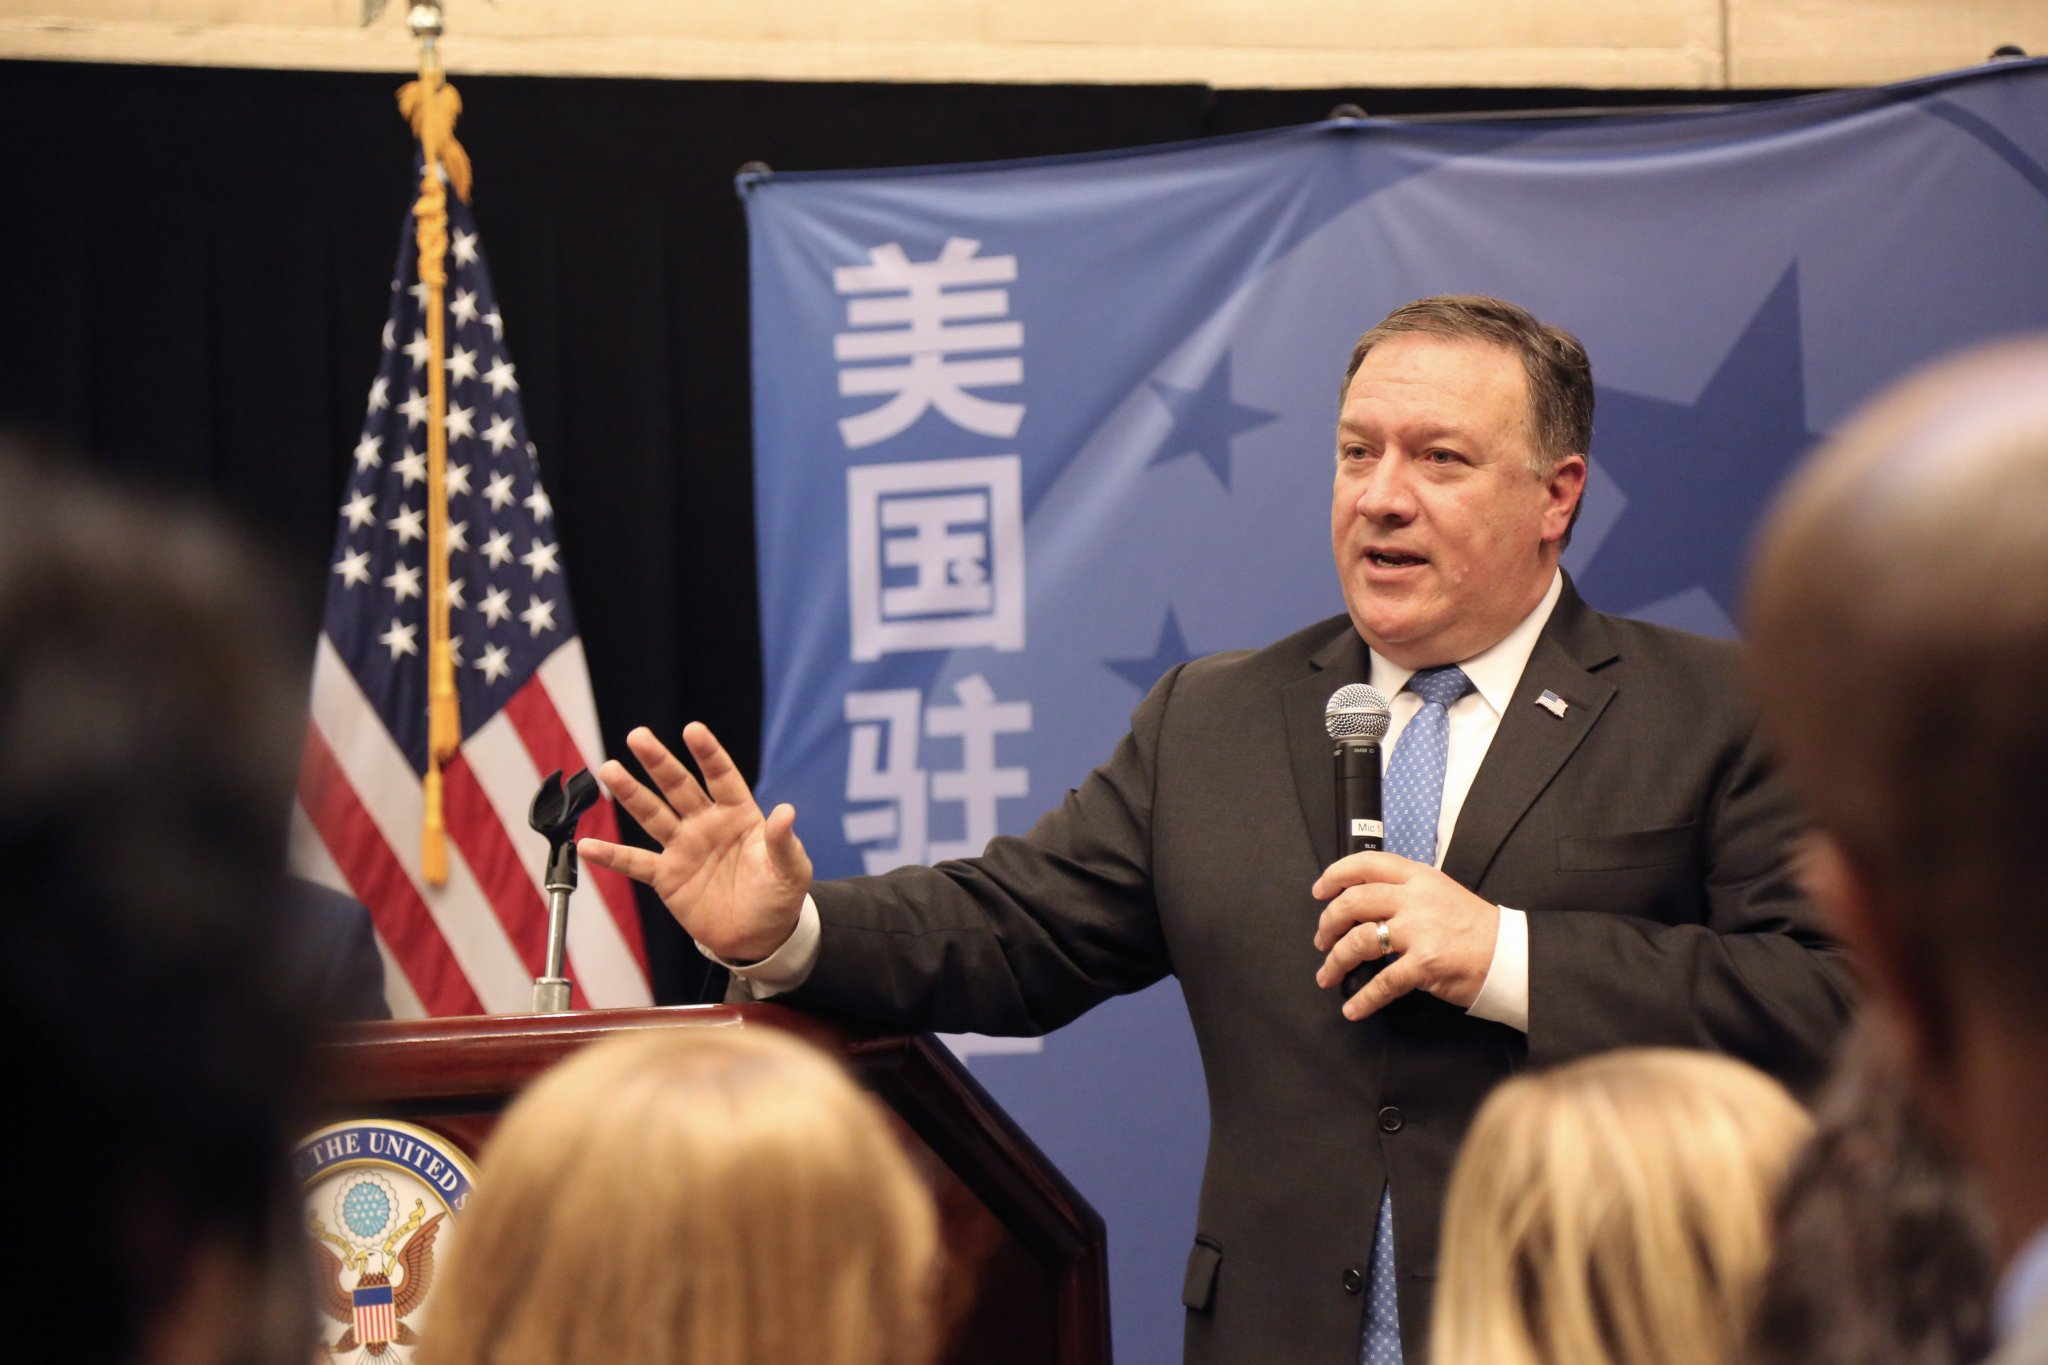 ICYMI Read @SecPompeo's remarks on America's Economic Revival at the @deteconomicclub. https://t.co/gdsfUc2EJa https://t.co/1shs2Nea7t